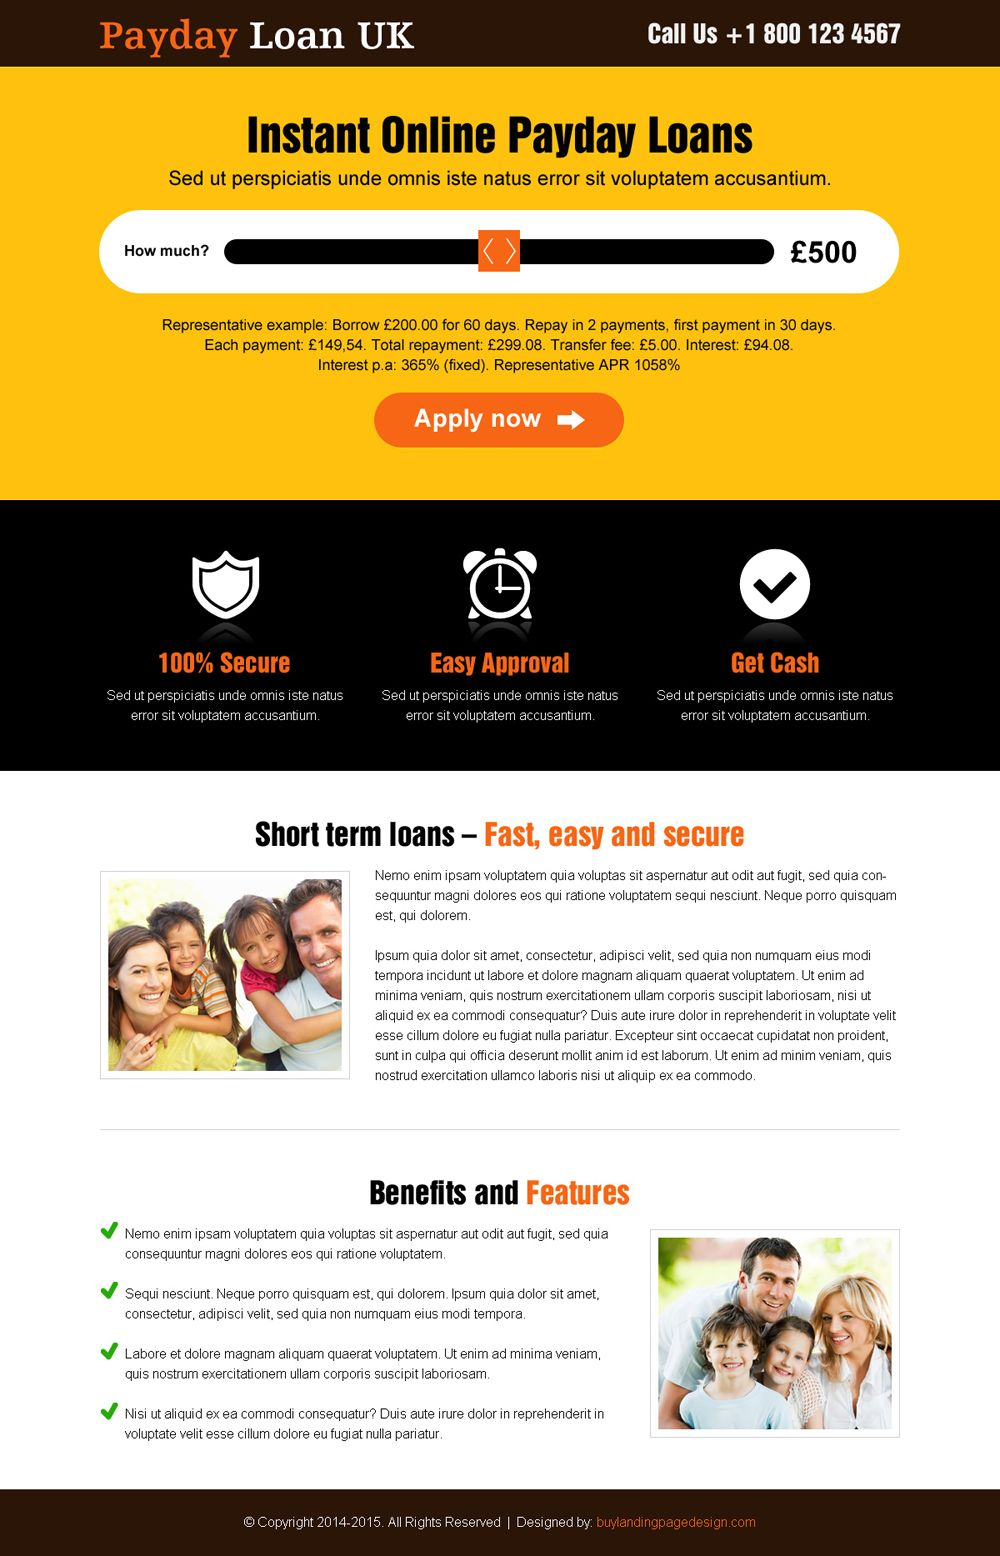 Best Uk Payday Loan Responsive Lp 13 Payday Loan Responsive Landing Page Design Preview Payday Loans Payday Loans Online Payday